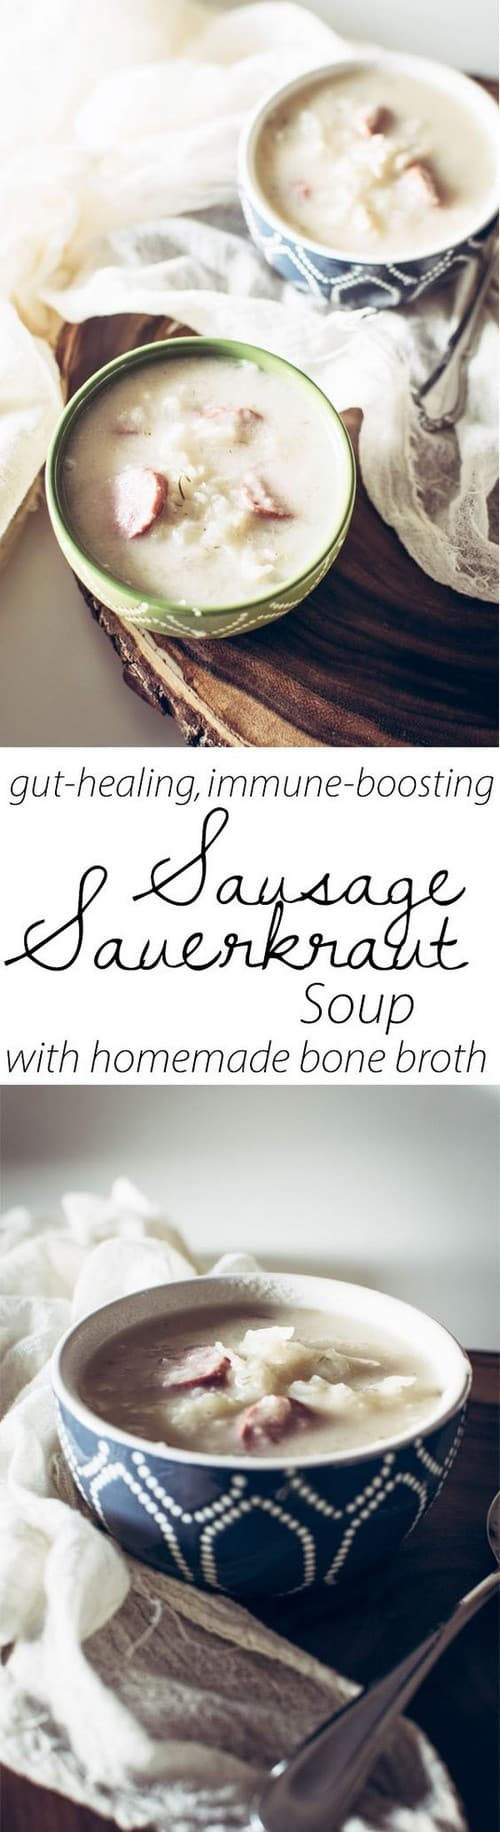 Whole30 Sausage Sauerkraut Soup